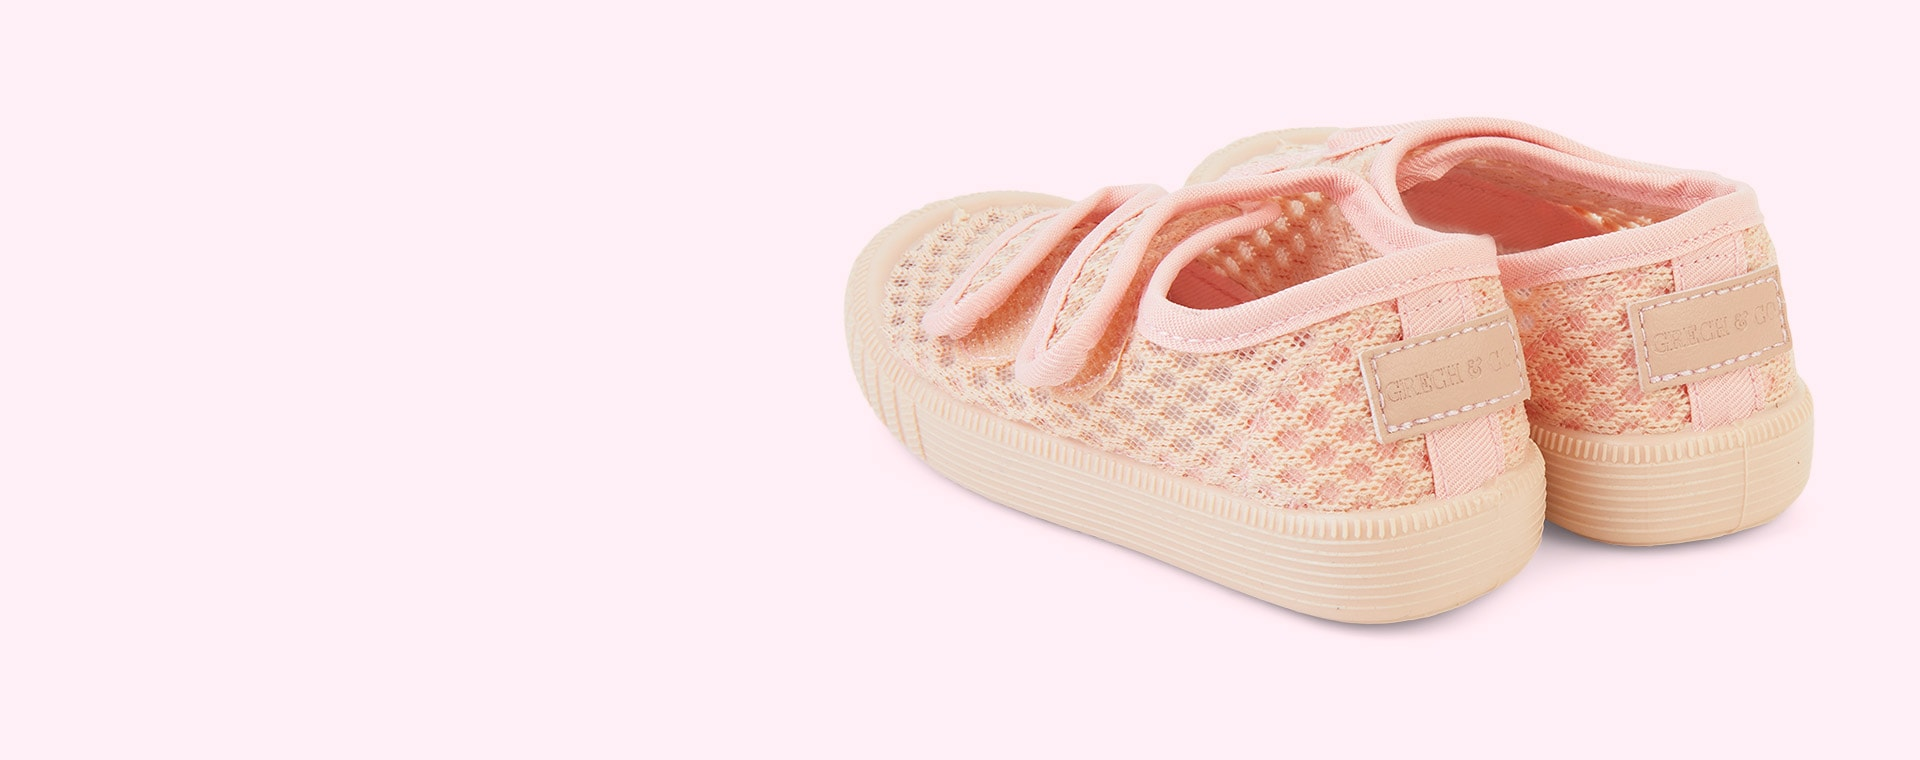 Shell Grech & Co Shoesies Play Shoes